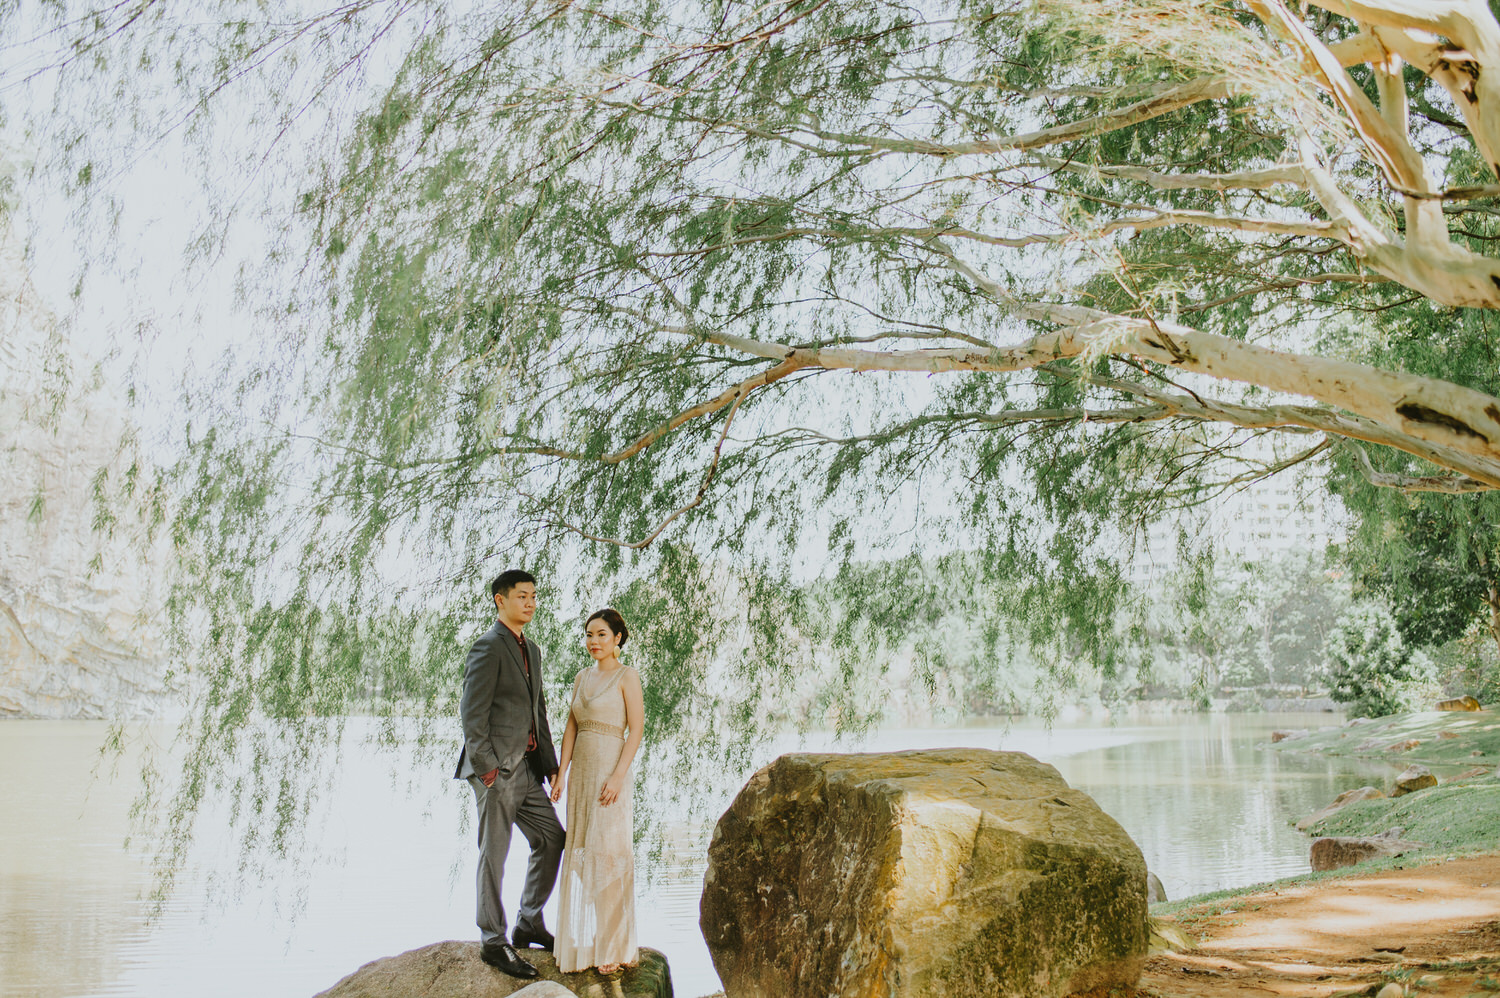 singapore prewedding destination - singapore wedding - diktatphotography - kadek artayasa - nikole + ardika - 9